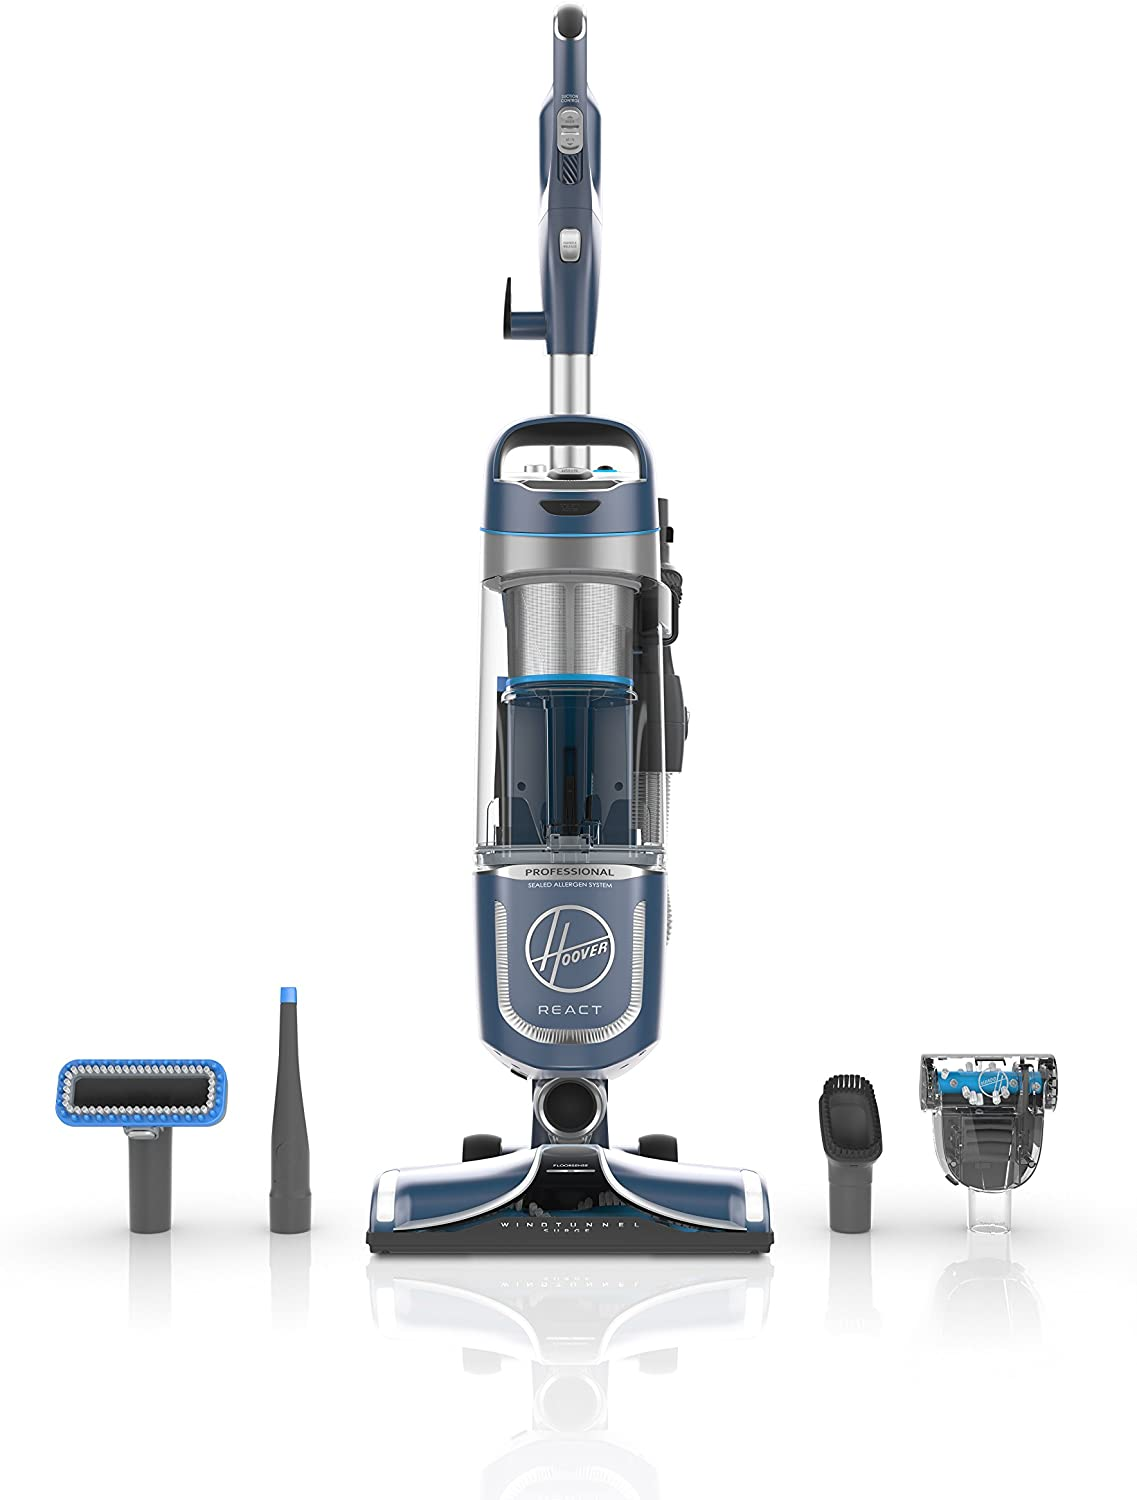 Hoover UH73220PC React Professional Pet Plus Bagless Upright Vacuum, bluee